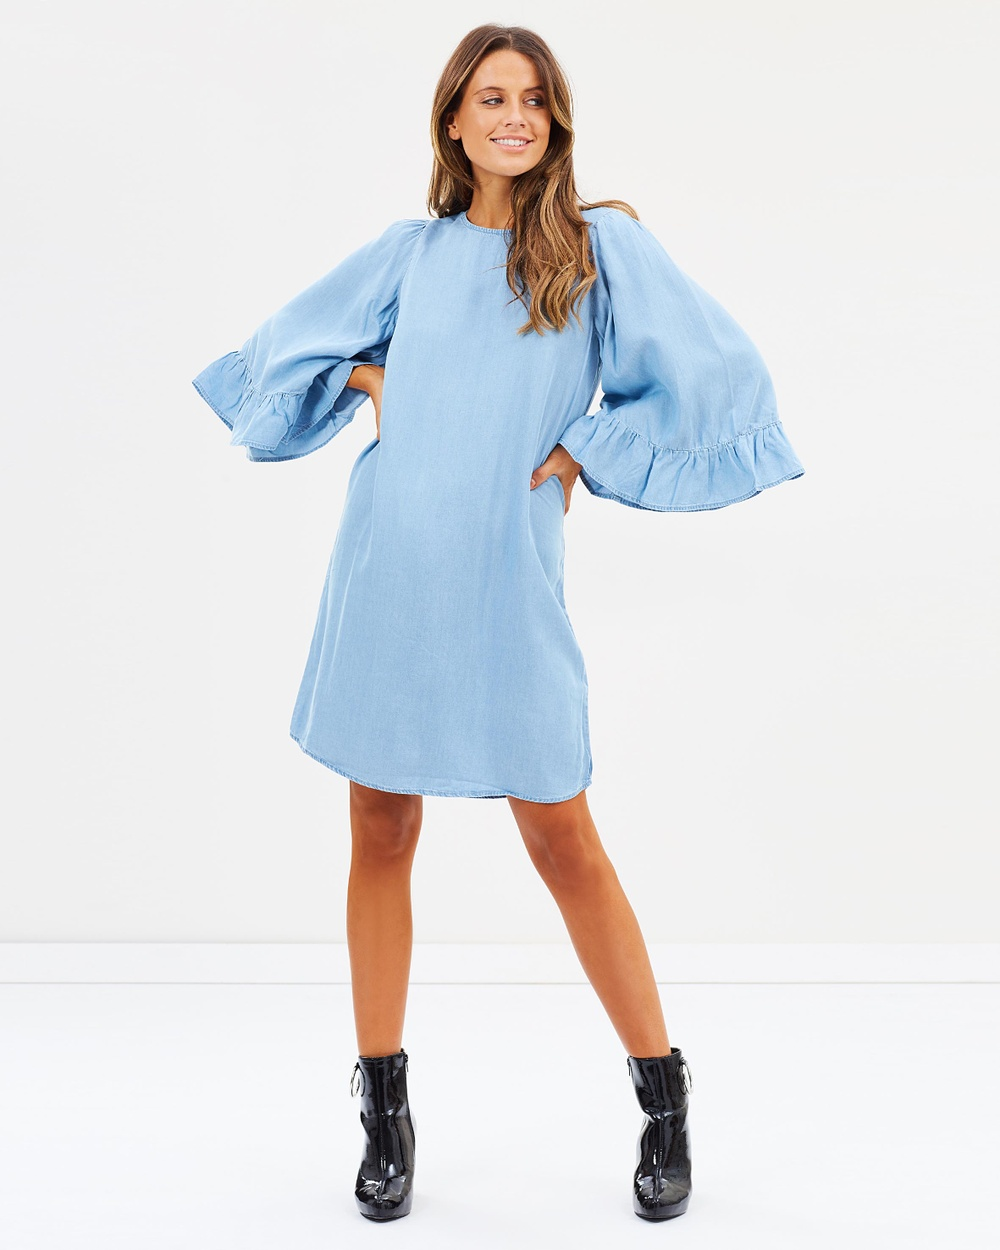 ONLY Haley Big Sleeve Frill Denim Dress Dresses Light Blue Denim Haley Big Sleeve Frill Denim Dress